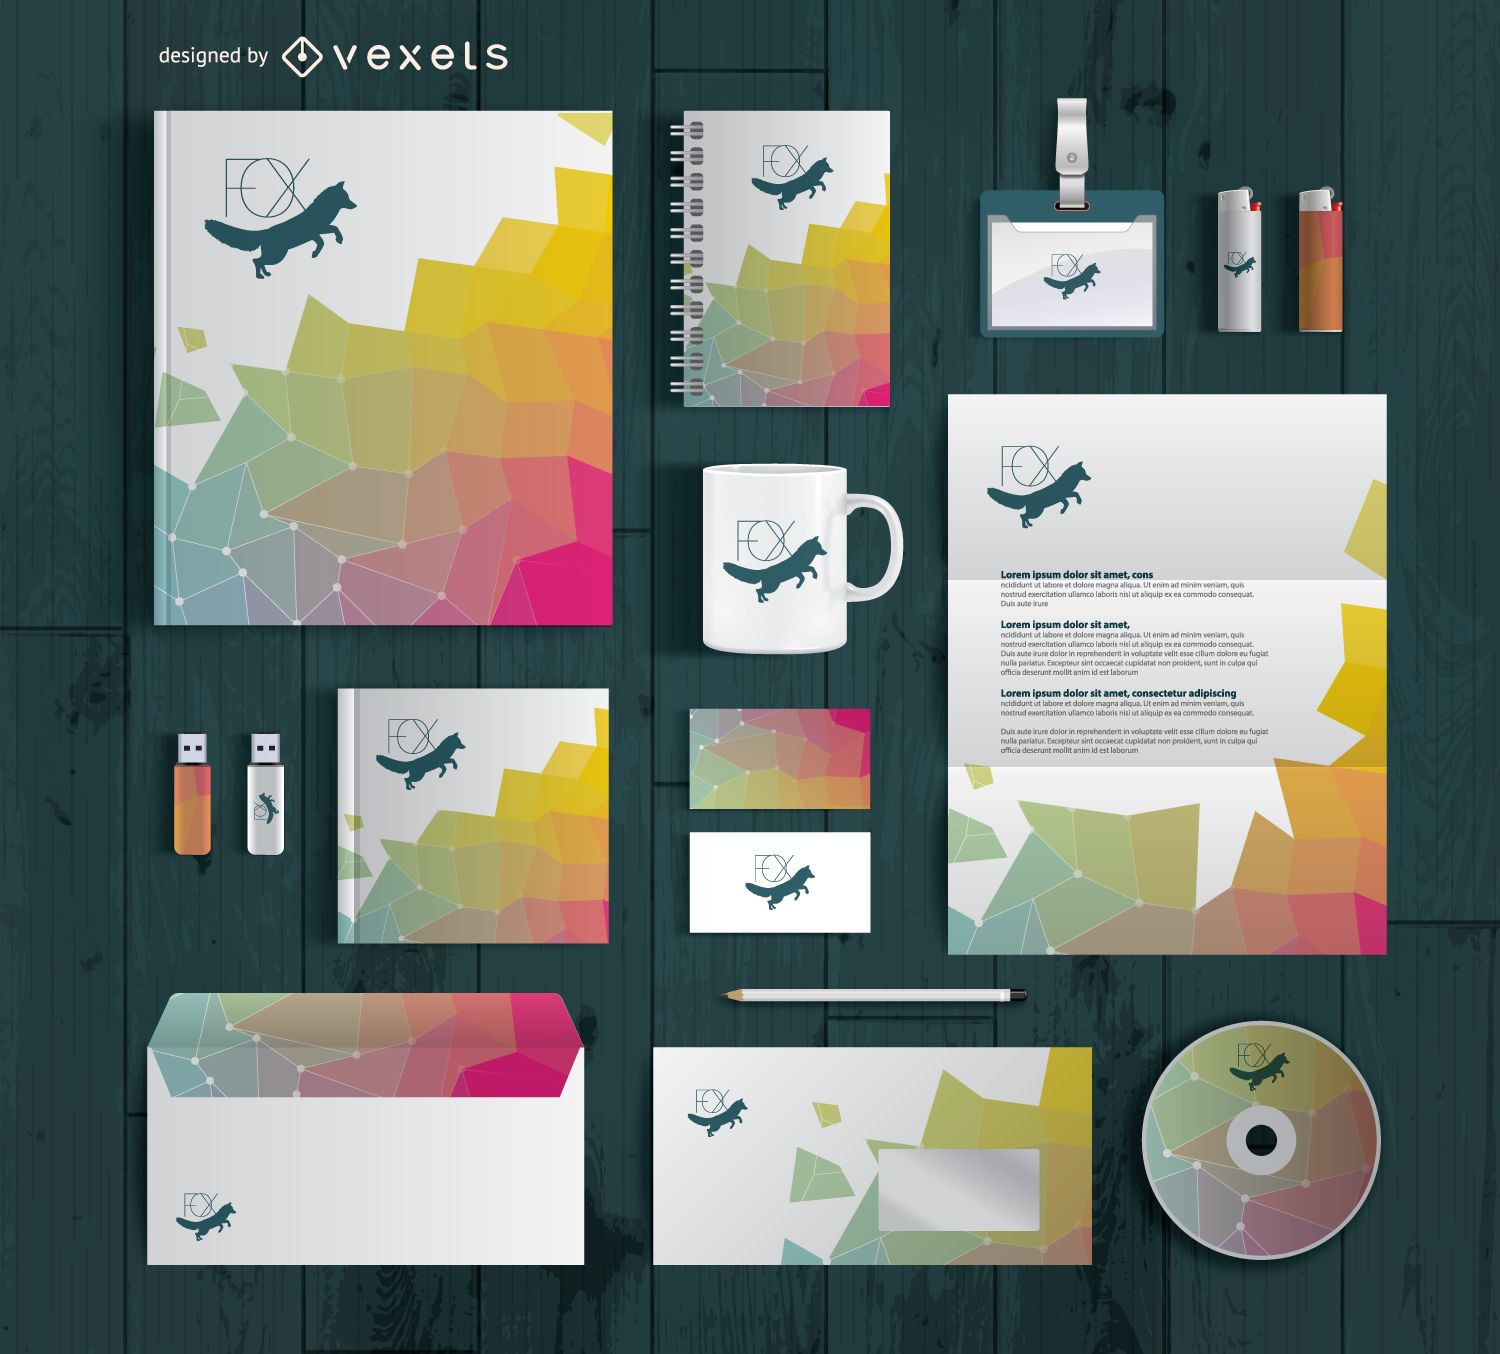 stationary supplies branding mockup vector download